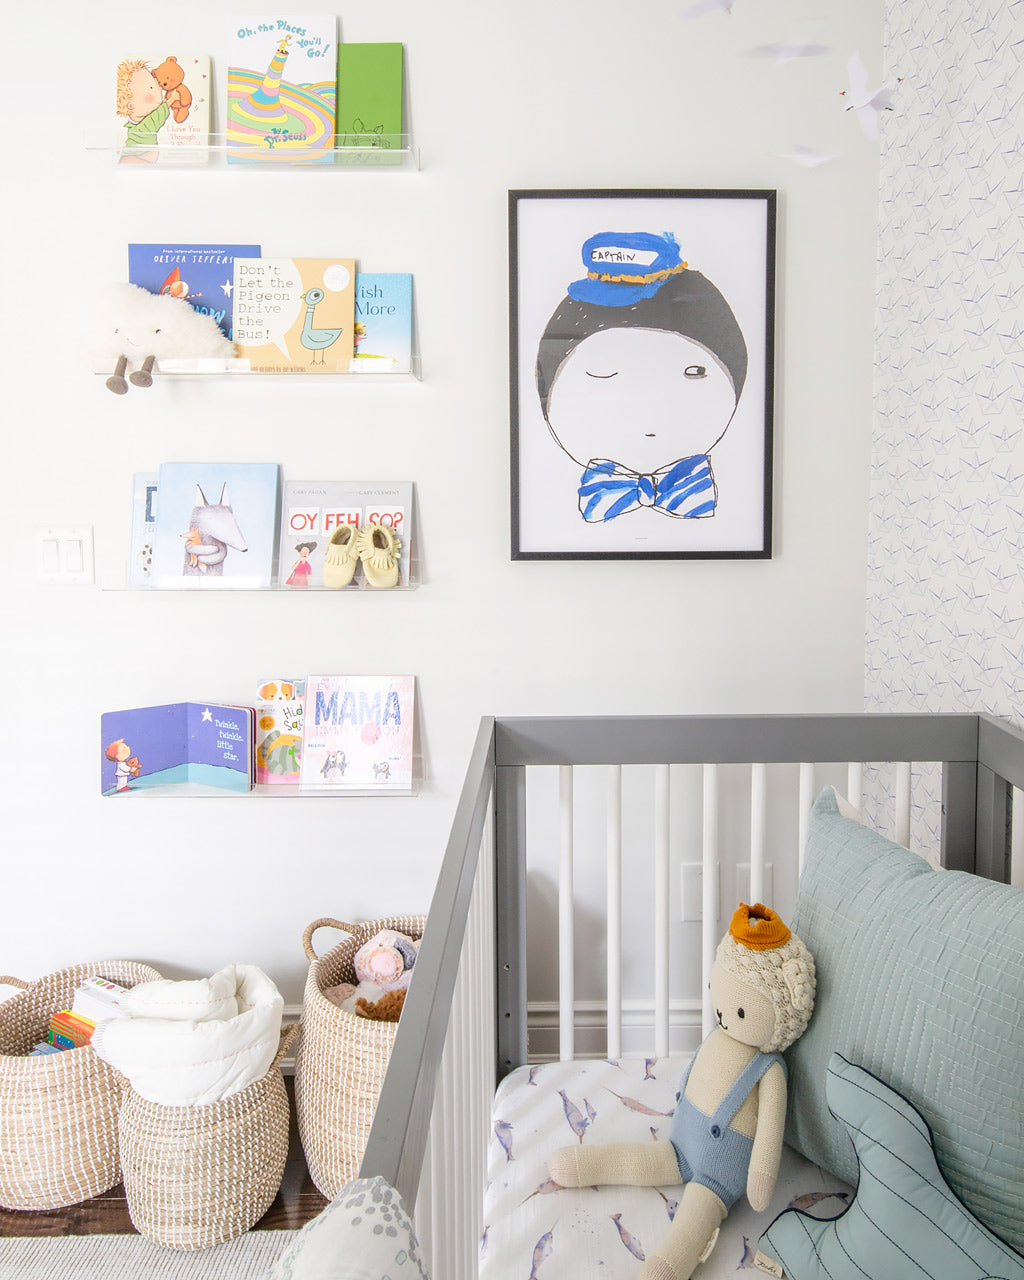 Nursery accent wall with captain poster and nautical theme colorful books on floating acrylic shelves